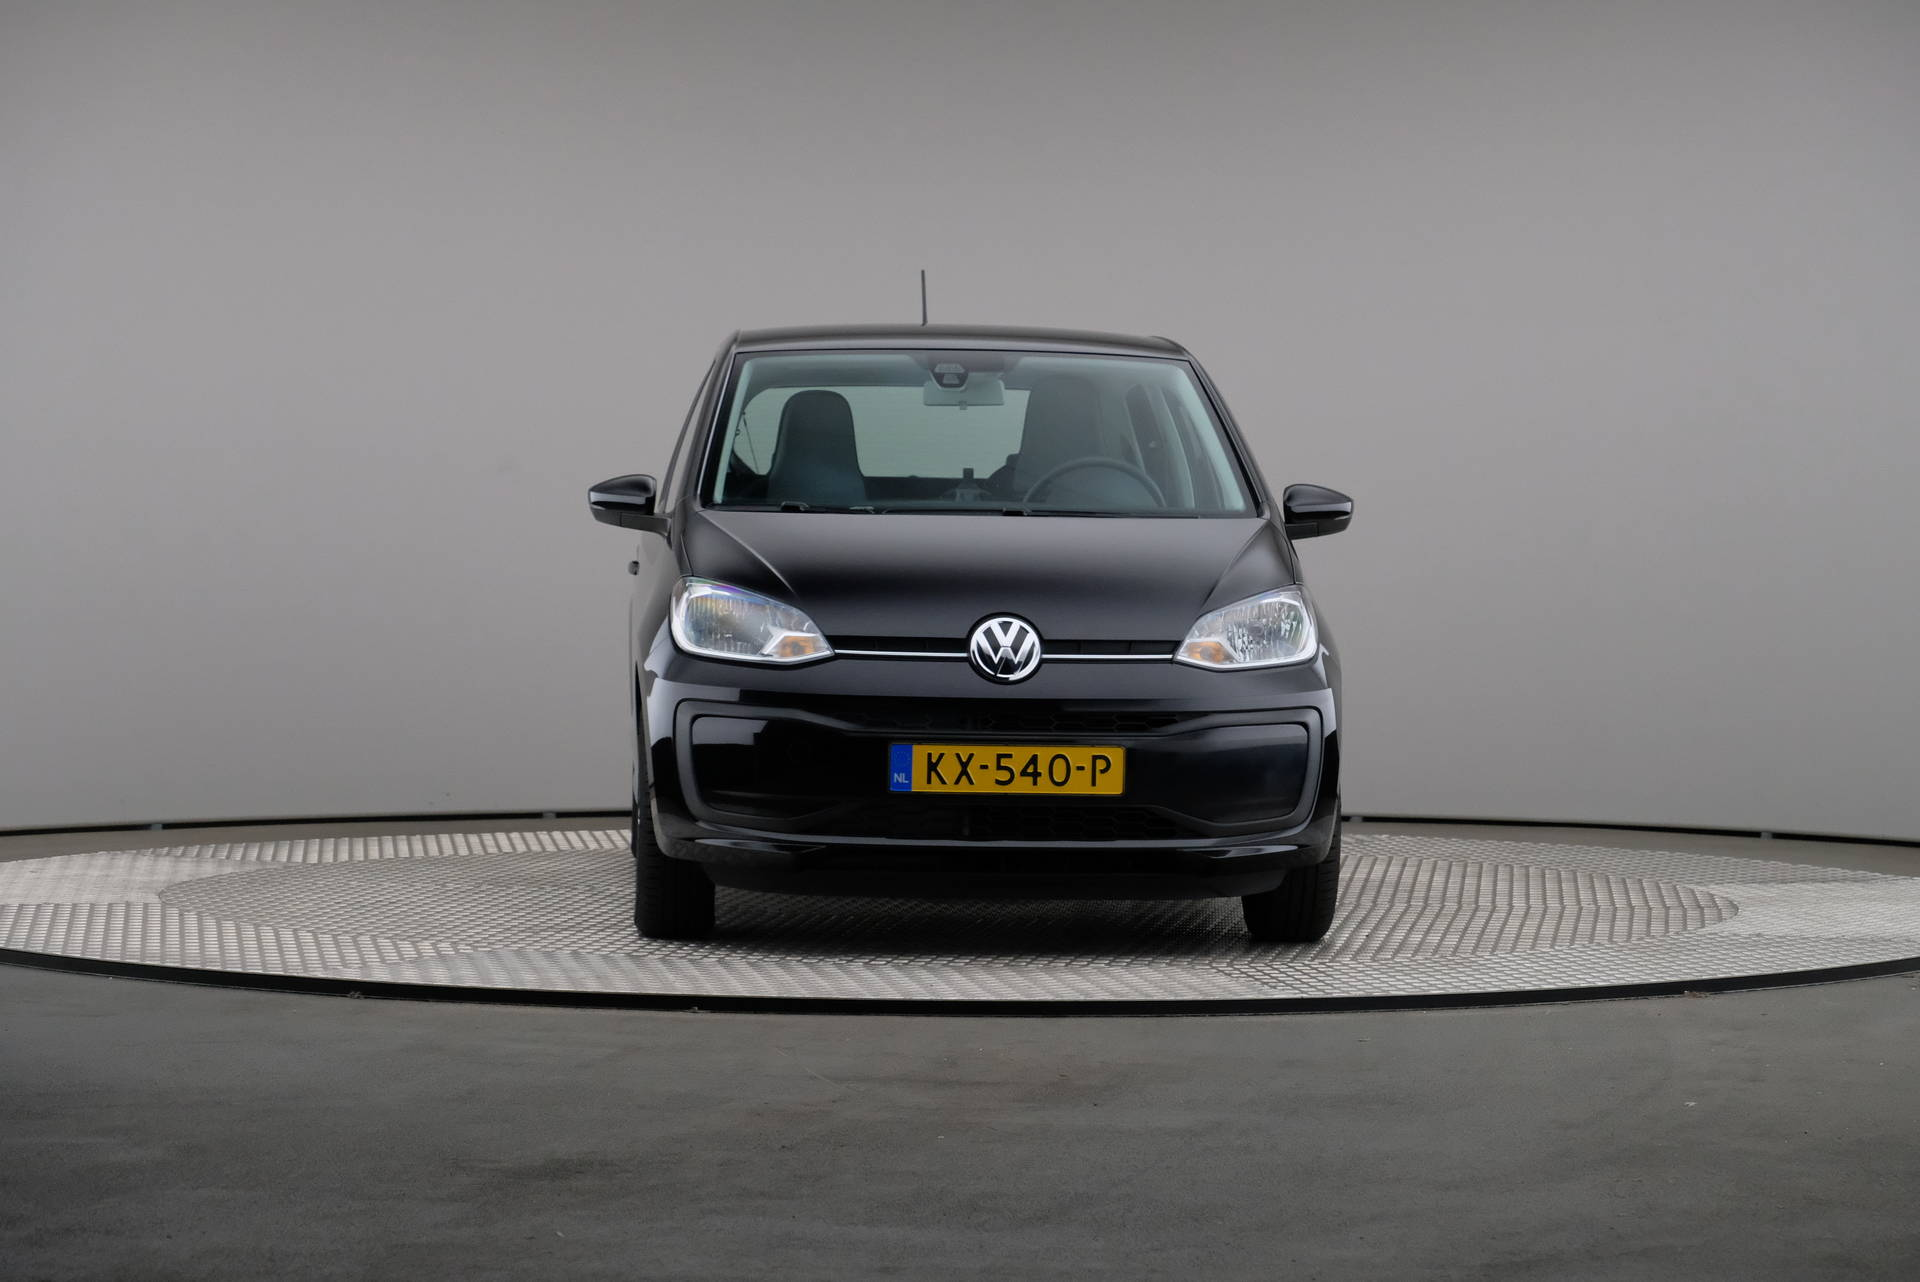 Volkswagen up! 1.0 44kW Move up! BlueMotion Technology, Airconditioning, 360-image32